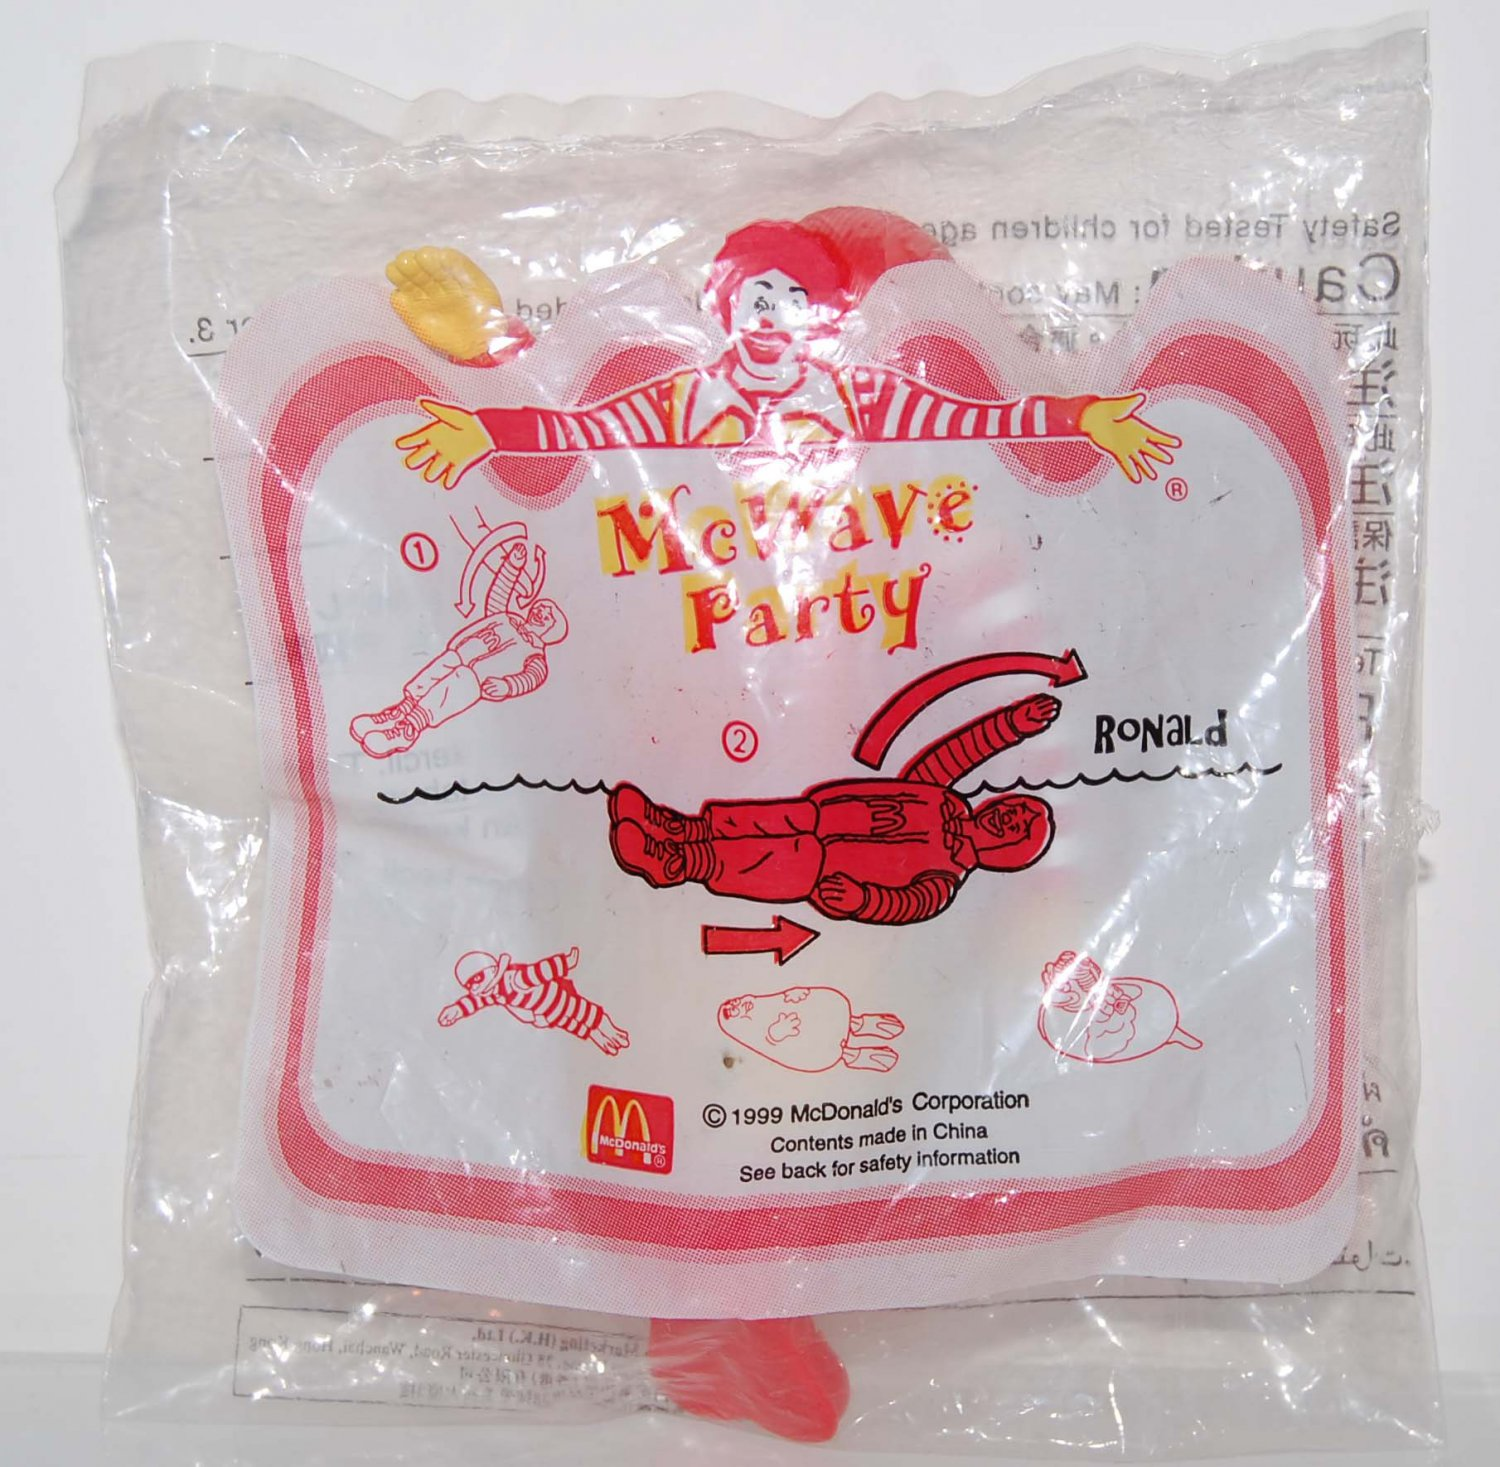 1999 McDonald's Happy Meal Toy McWave Party - Swimming Ronald